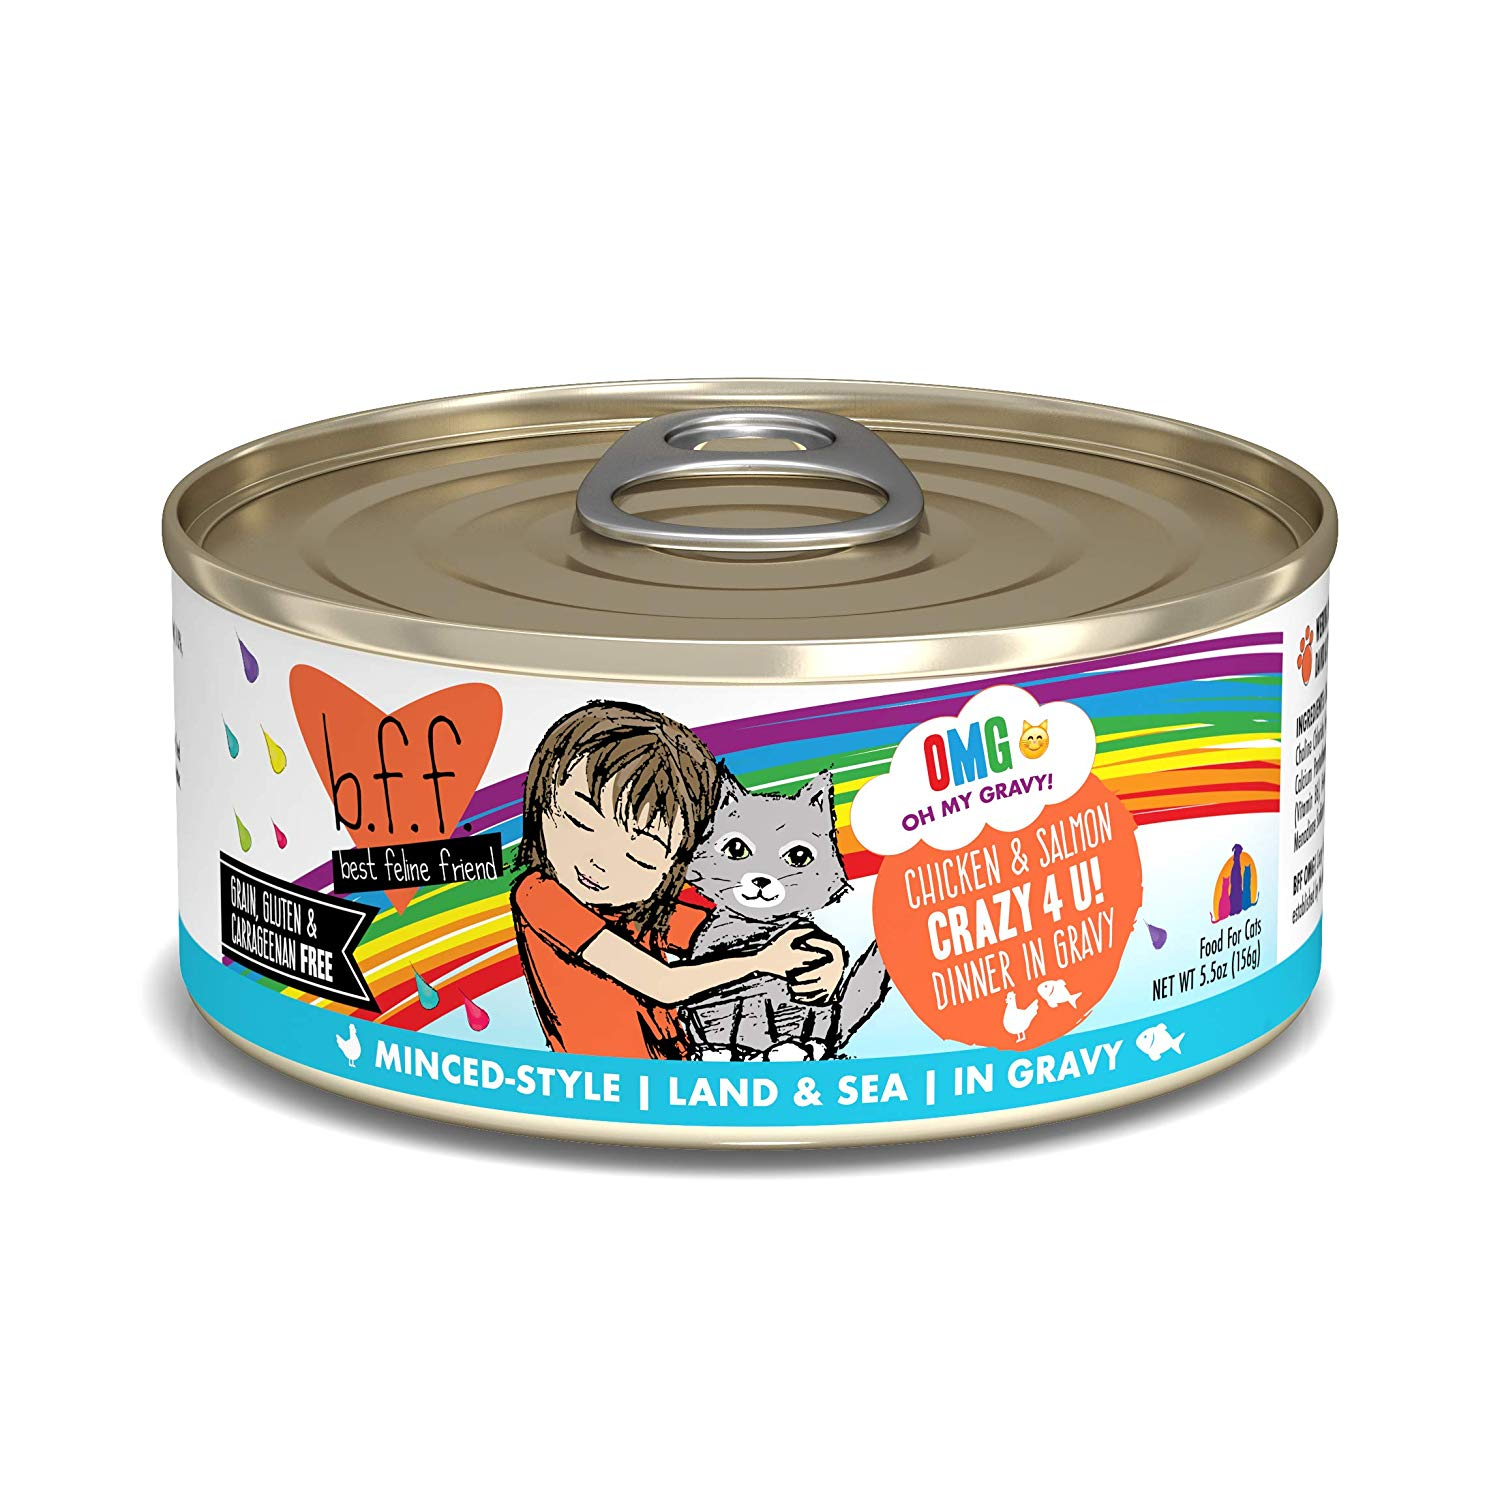 BFF Oh My Gravy! Crazy 4 U! Chicken & Salmon Dinner in Gravy Grain-Free Wet Cat Food, 5.5-oz